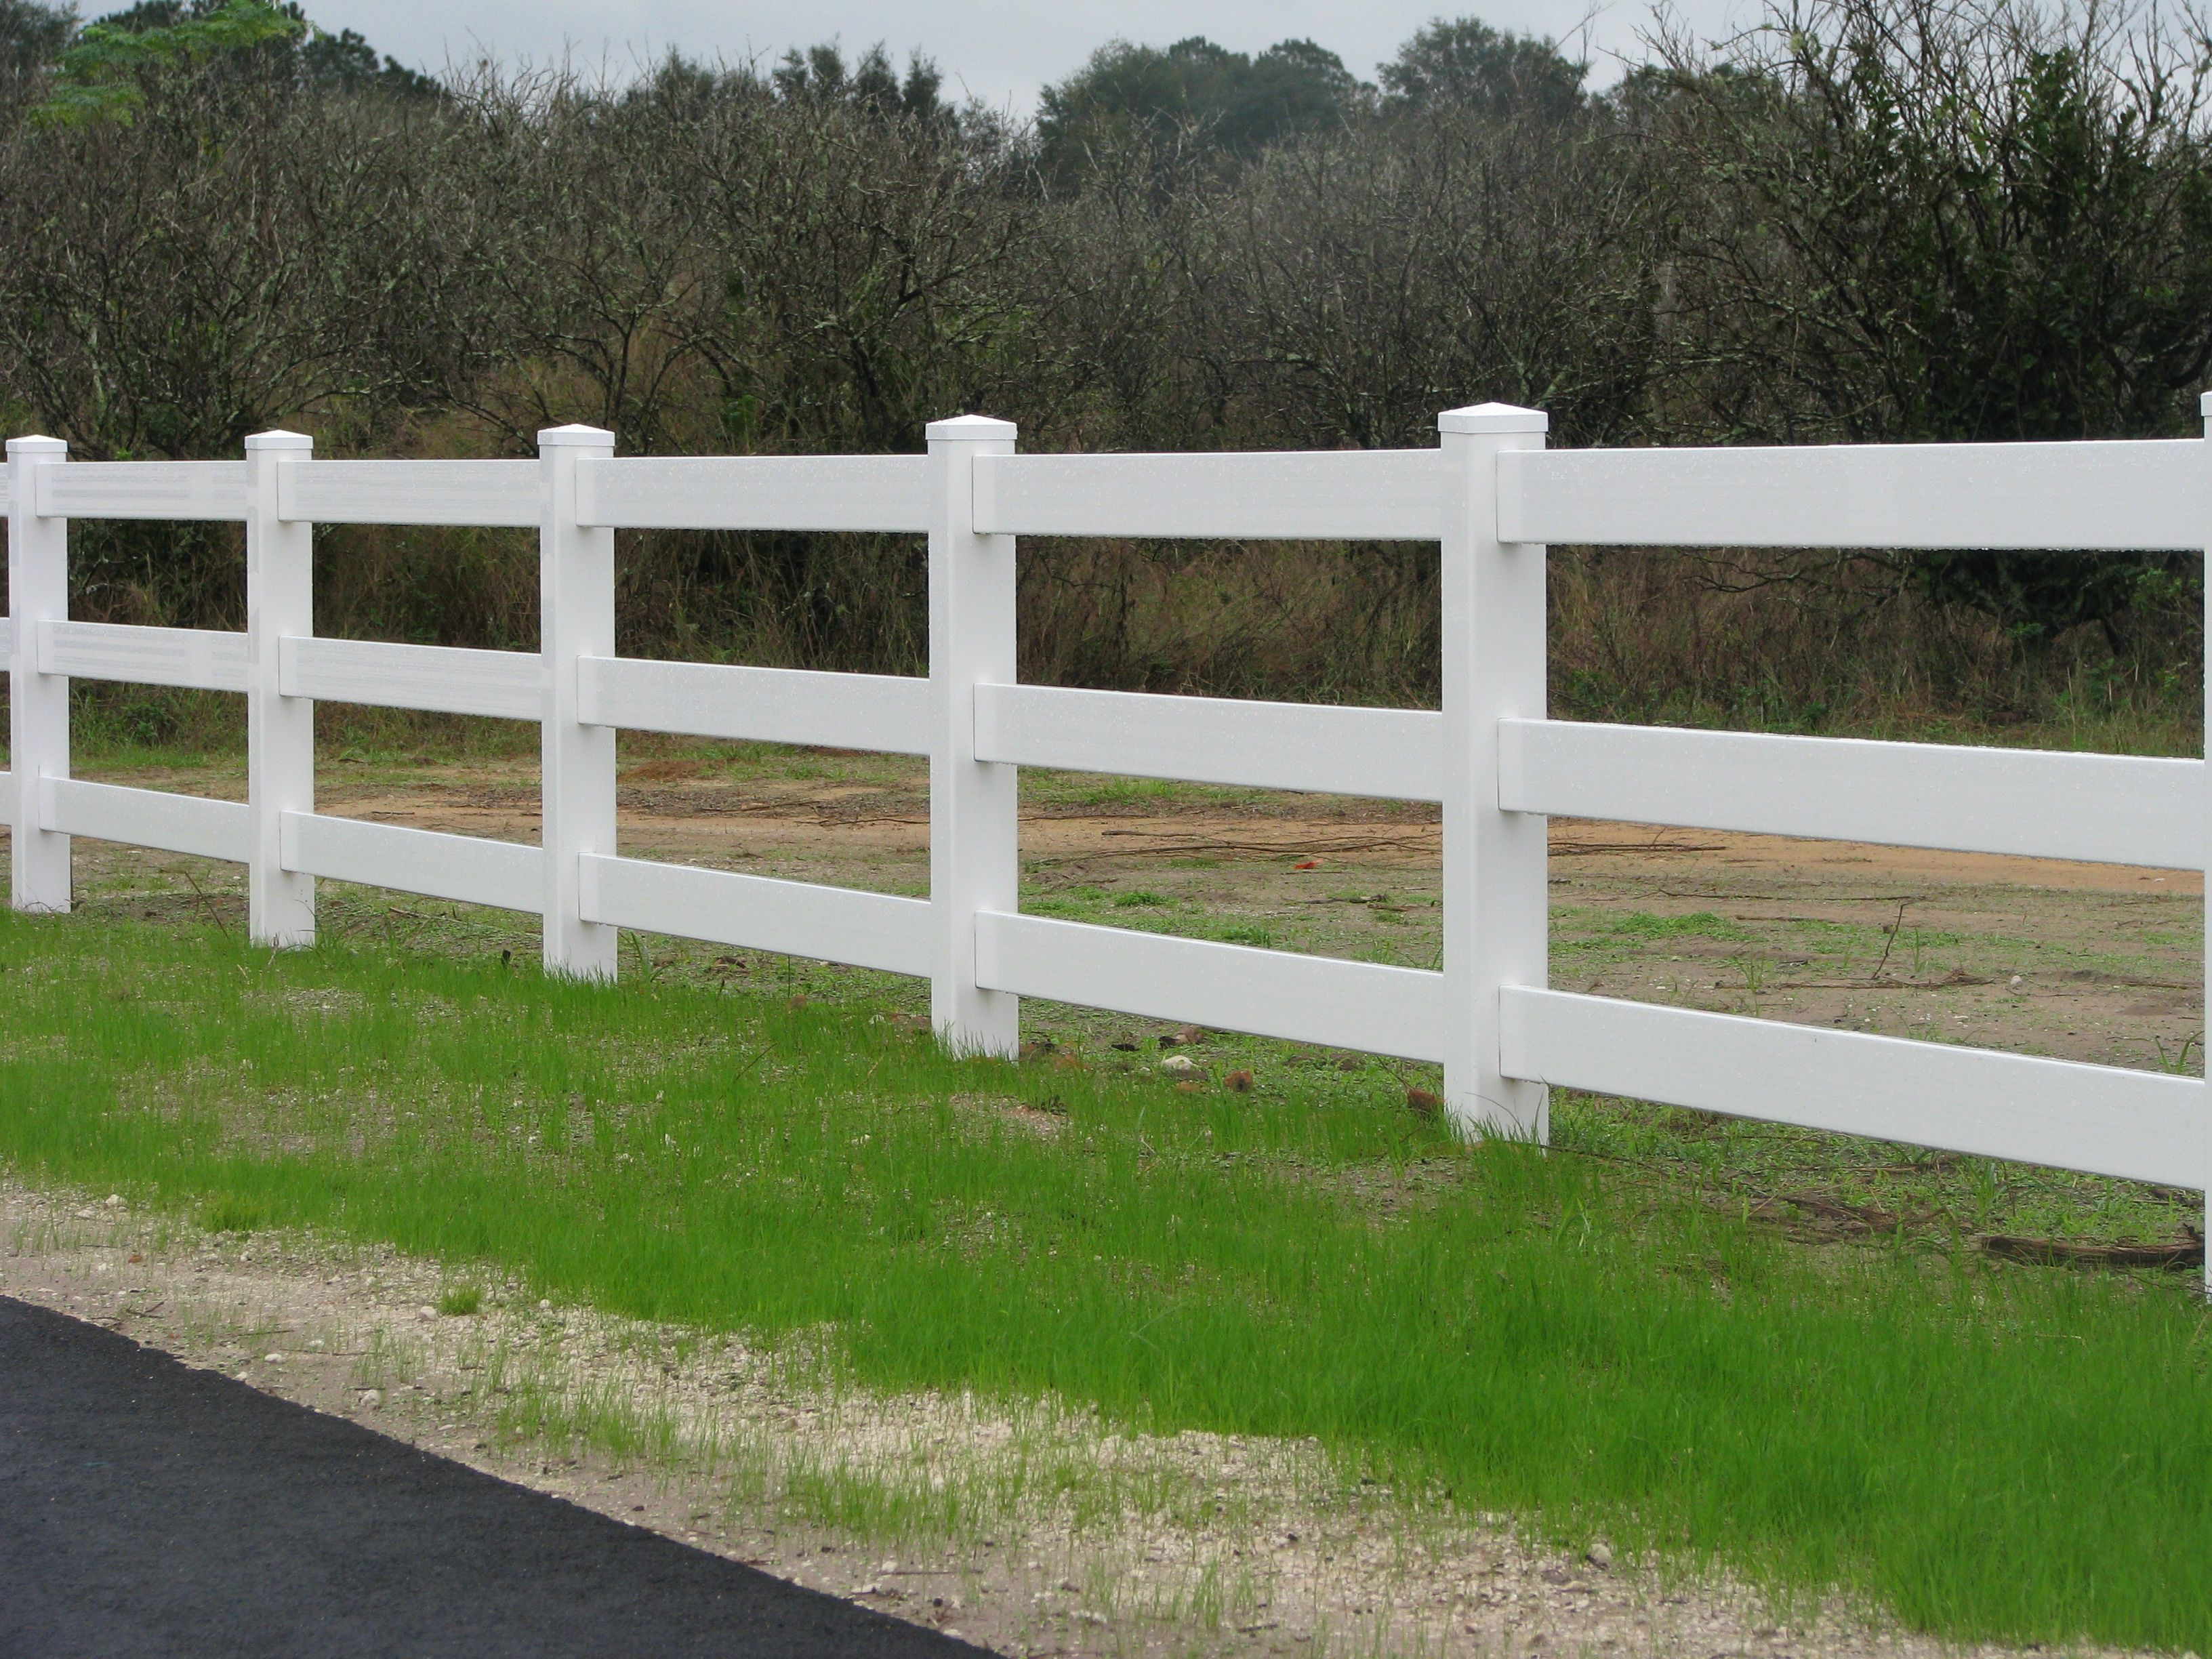 Vinyl Fence Designs 3 Rail Ranch Designed By Mossy Oak Company